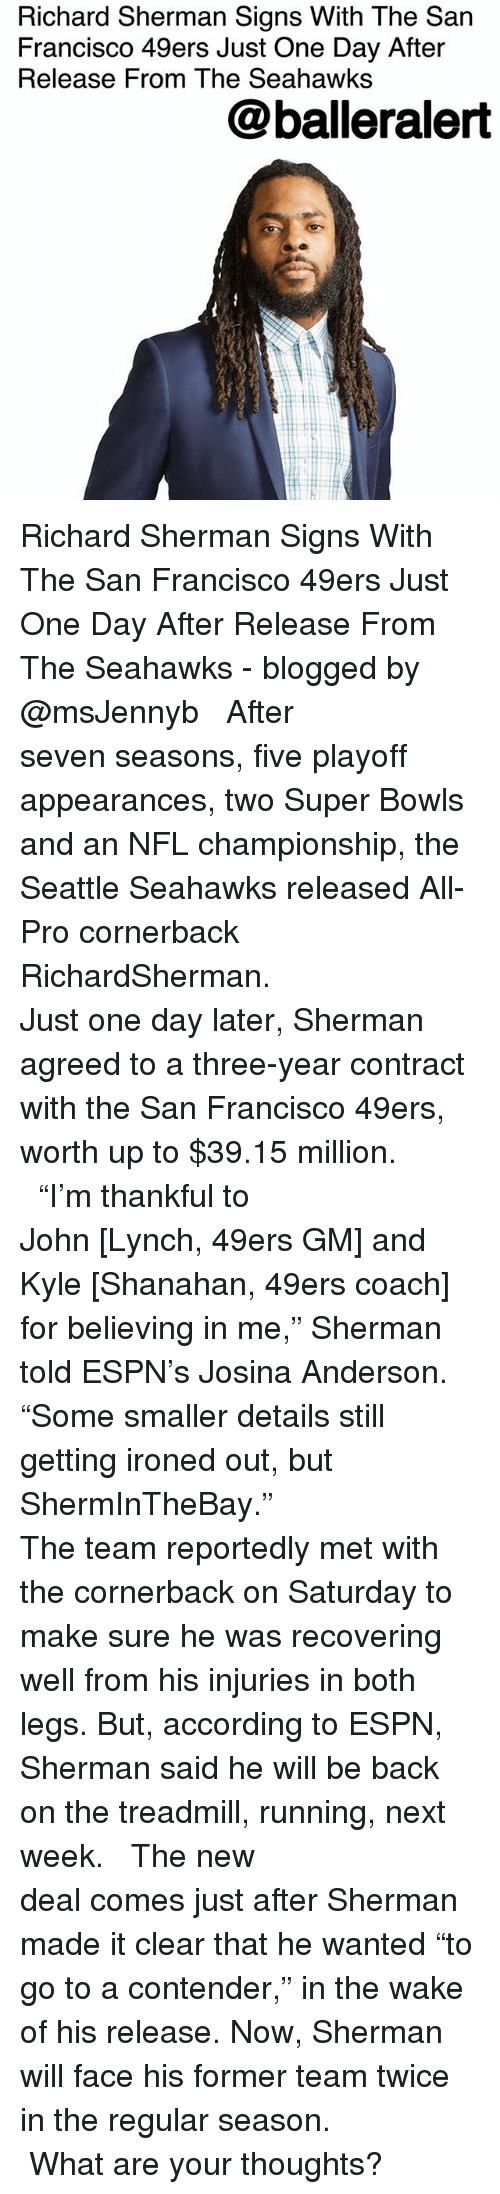 """San Francisco 49ers: Richard Sherman Signs With The San  Francisco 49ers Just One Day After  Release From The Seahawks  @balleralert Richard Sherman Signs With The San Francisco 49ers Just One Day After Release From The Seahawks - blogged by @msJennyb ⠀⠀⠀⠀⠀⠀⠀⠀⠀ ⠀⠀⠀⠀⠀⠀⠀⠀⠀ After seven seasons, five playoff appearances, two Super Bowls and an NFL championship, the Seattle Seahawks released All-Pro cornerback RichardSherman. ⠀⠀⠀⠀⠀⠀⠀⠀⠀ ⠀⠀⠀⠀⠀⠀⠀⠀⠀ Just one day later, Sherman agreed to a three-year contract with the San Francisco 49ers, worth up to $39.15 million. ⠀⠀⠀⠀⠀⠀⠀⠀⠀ ⠀⠀⠀⠀⠀⠀⠀⠀⠀ """"I'm thankful to John [Lynch, 49ers GM] and Kyle [Shanahan, 49ers coach] for believing in me,"""" Sherman told ESPN's Josina Anderson. """"Some smaller details still getting ironed out, but ShermInTheBay."""" ⠀⠀⠀⠀⠀⠀⠀⠀⠀ ⠀⠀⠀⠀⠀⠀⠀⠀⠀ The team reportedly met with the cornerback on Saturday to make sure he was recovering well from his injuries in both legs. But, according to ESPN, Sherman said he will be back on the treadmill, running, next week. ⠀⠀⠀⠀⠀⠀⠀⠀⠀ ⠀⠀⠀⠀⠀⠀⠀⠀⠀ The new deal comes just after Sherman made it clear that he wanted """"to go to a contender,"""" in the wake of his release. Now, Sherman will face his former team twice in the regular season. ⠀⠀⠀⠀⠀⠀⠀⠀⠀ ⠀⠀⠀⠀⠀⠀⠀⠀⠀ What are your thoughts?"""